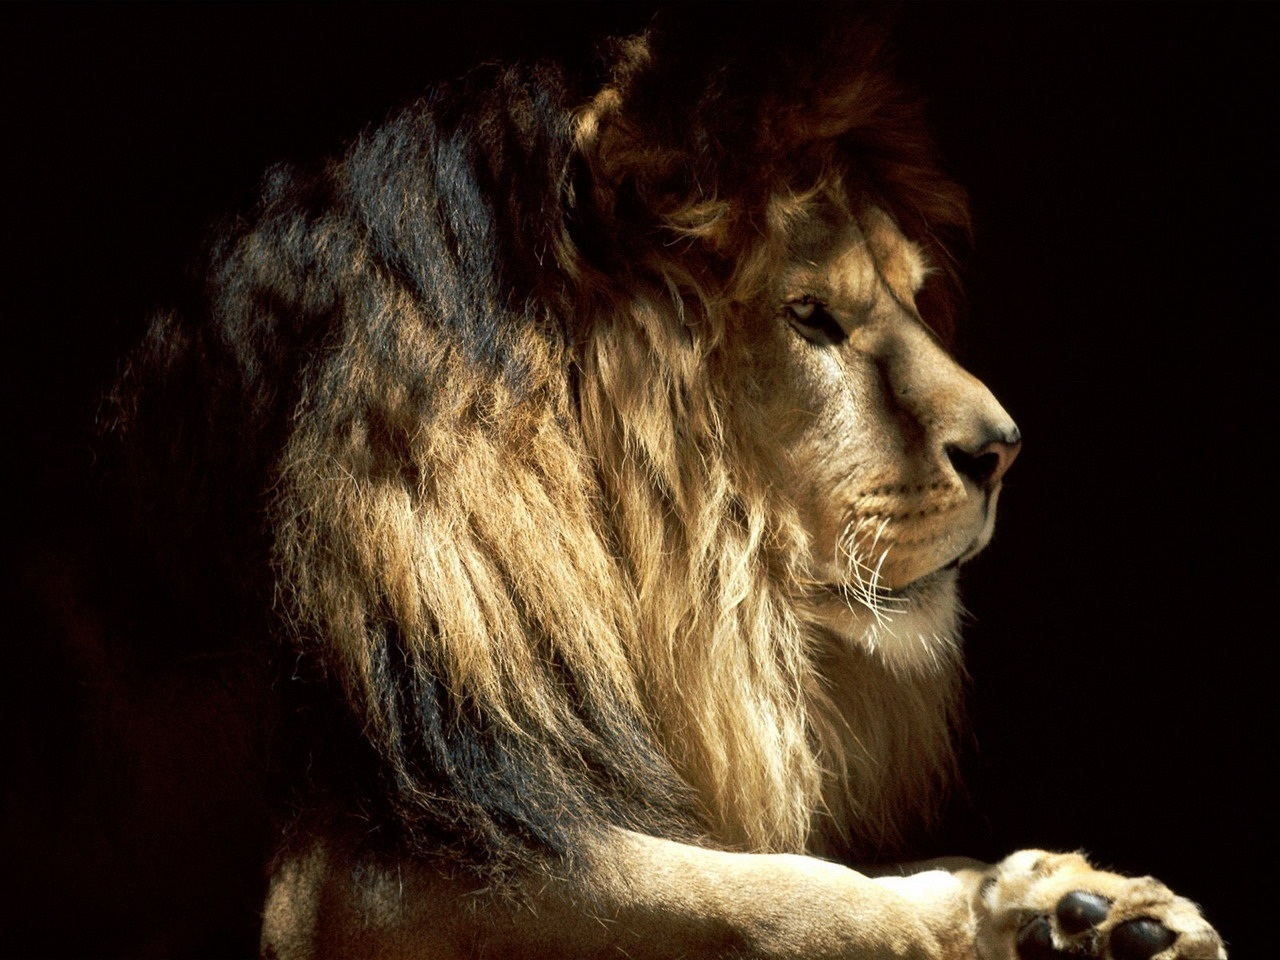 Free Download Old Lion Hd Wallpaper For Android Live Wallpaper